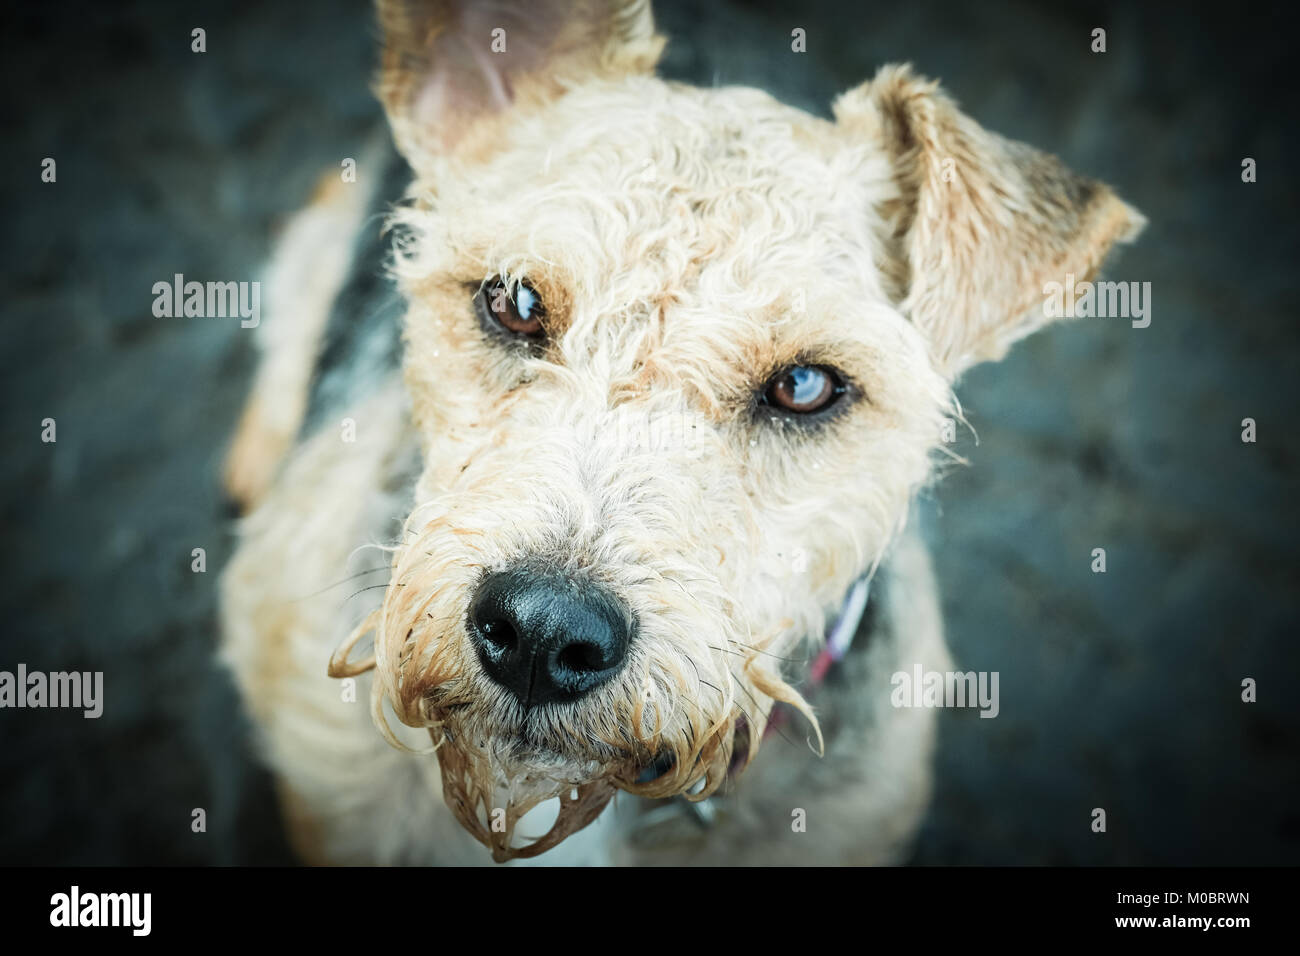 Wire Haired Terrier Stock Photos & Wire Haired Terrier Stock Images ...